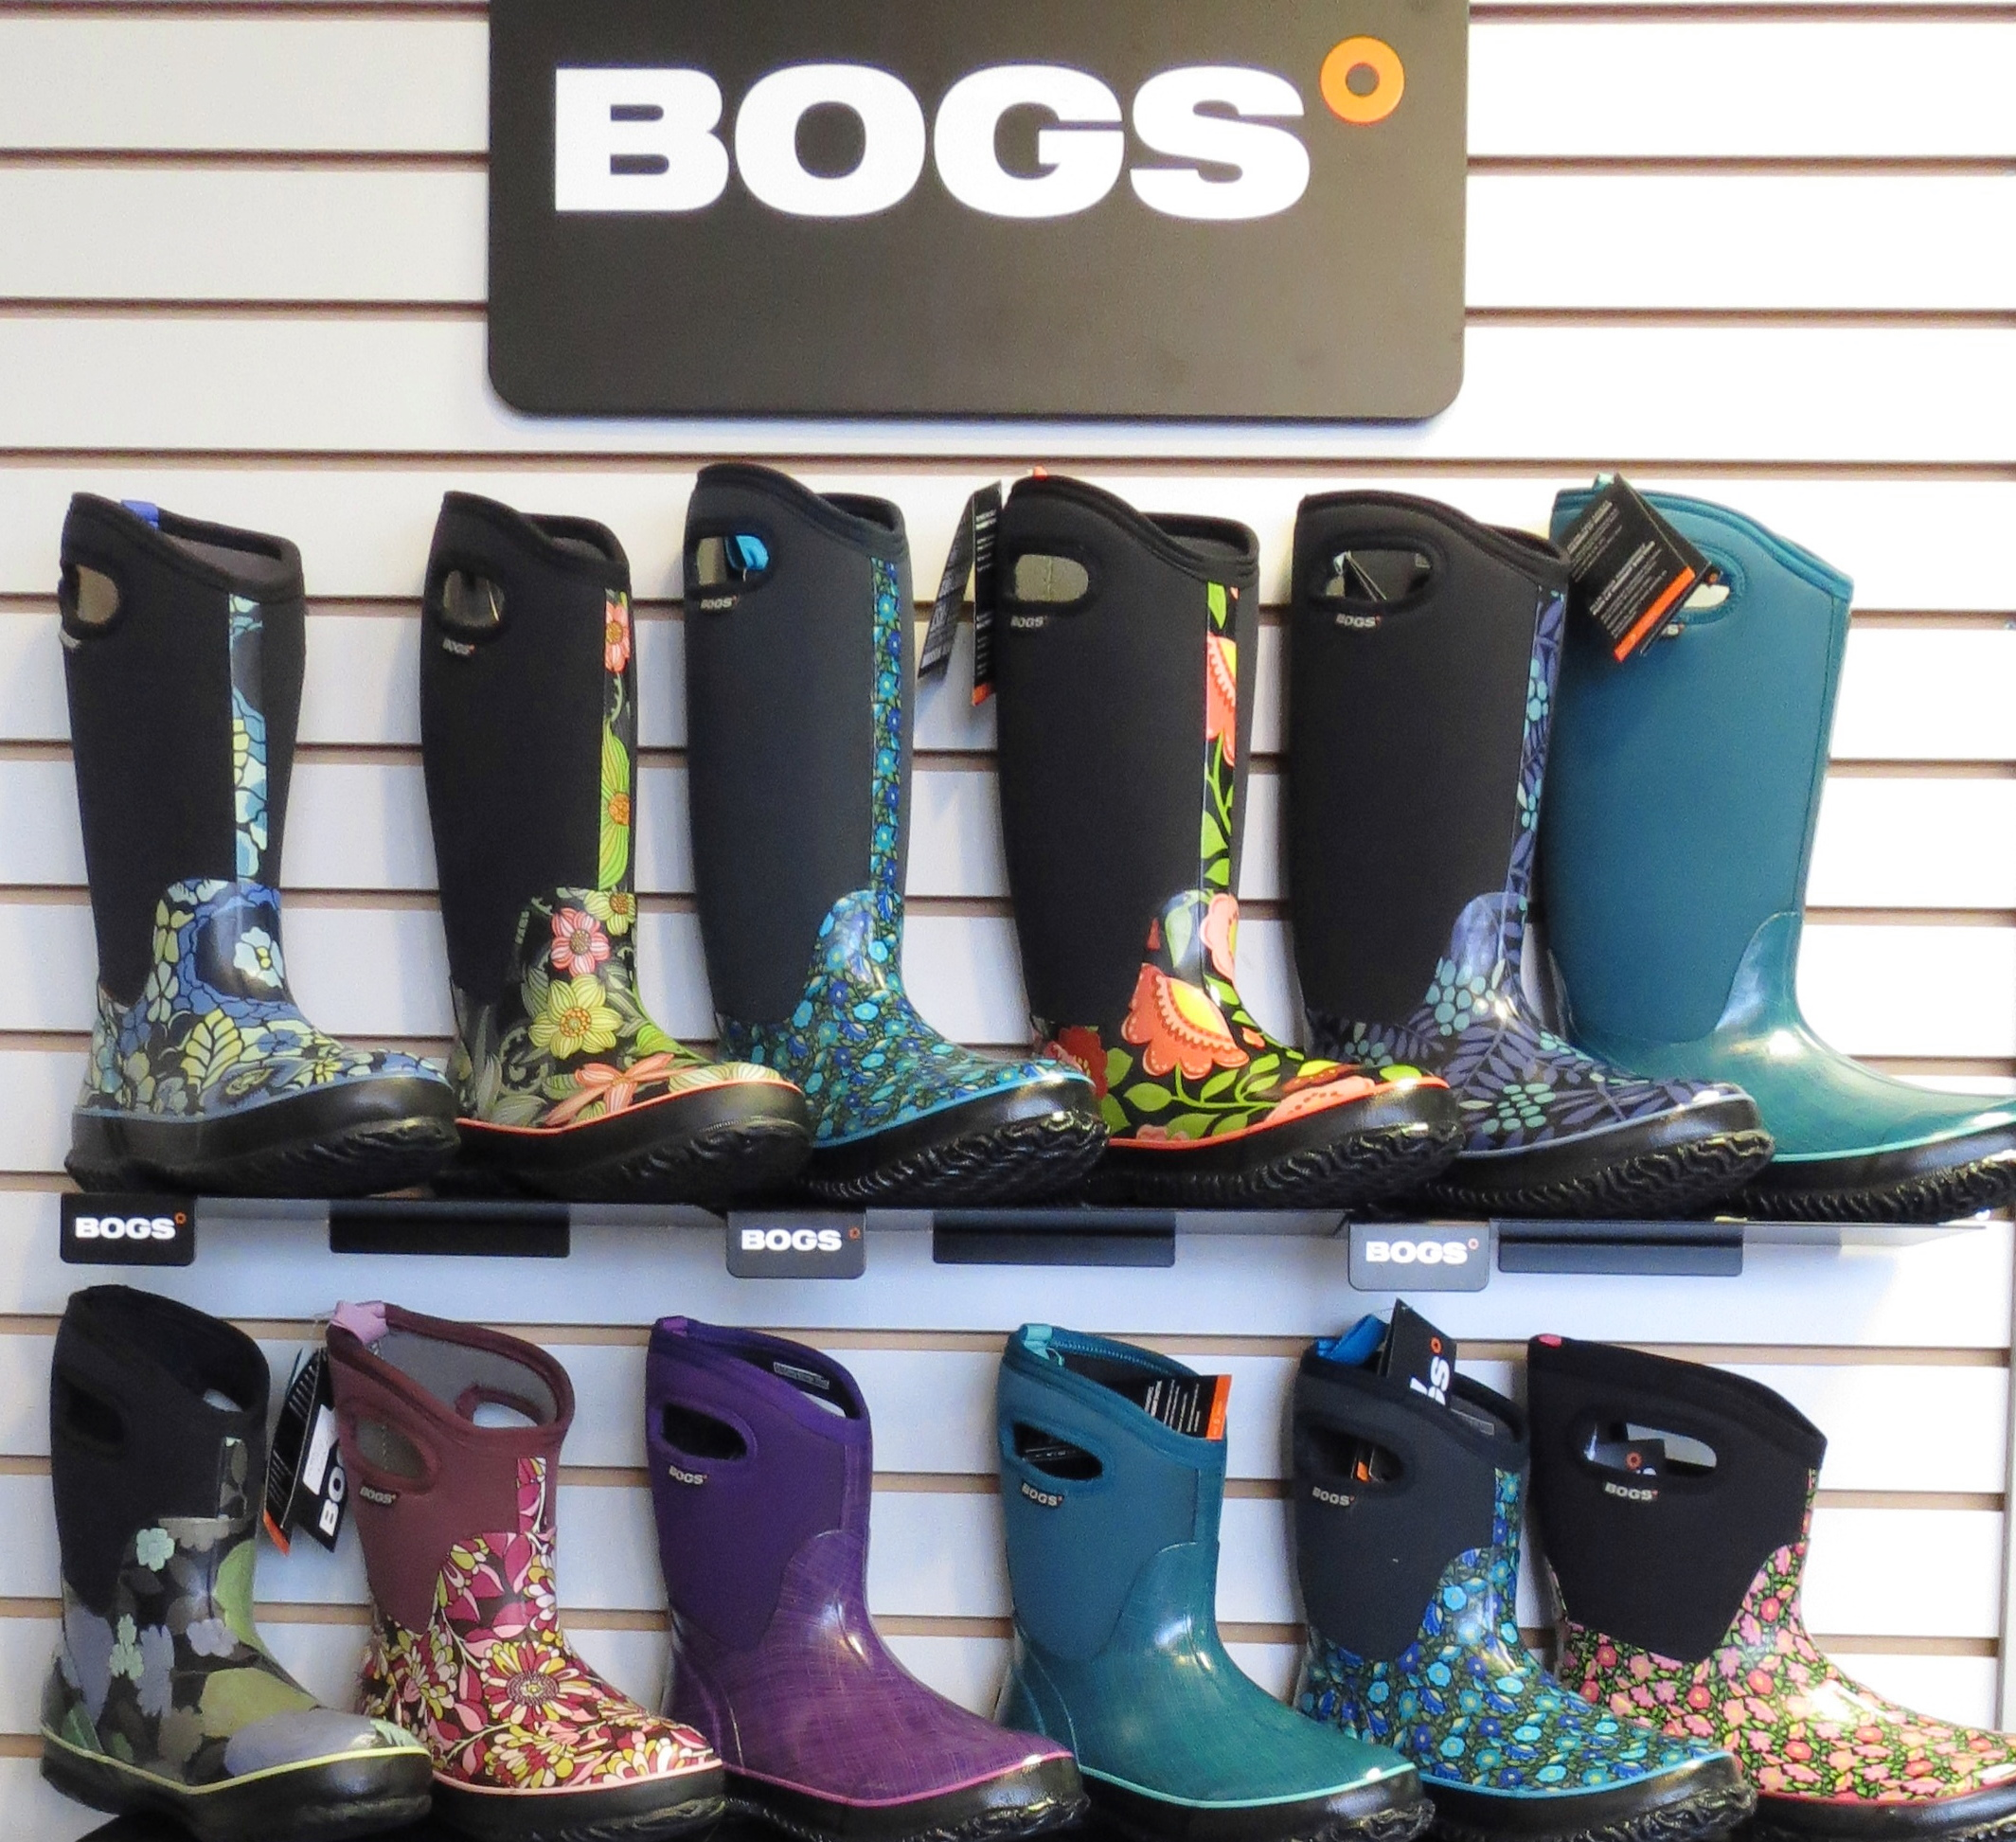 BOGS FOOTWEAR (WEYCO): BOGS boots for kids, women, and men provide comfort and protection from rain, snow, and anything mother nature throws at them